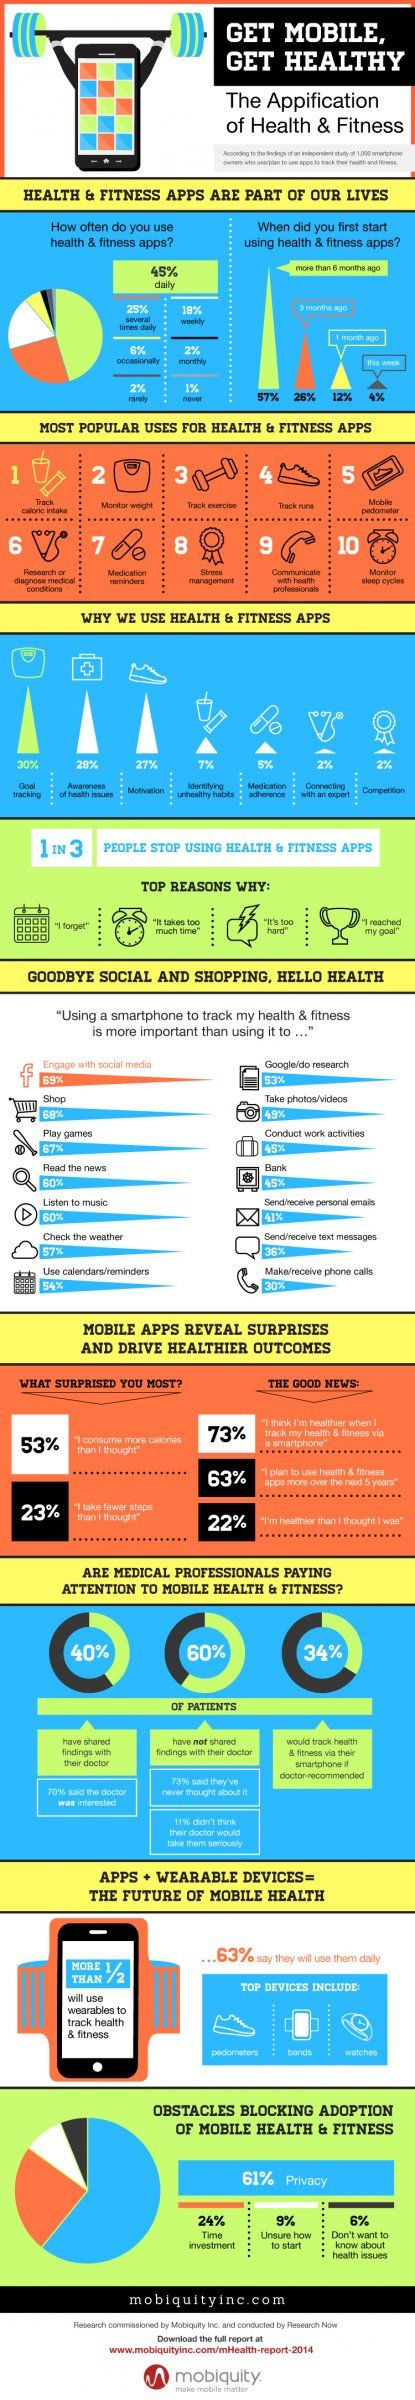 Get Mobile, Get Healthy: The Appification of Health & Fitness | Mobiquity